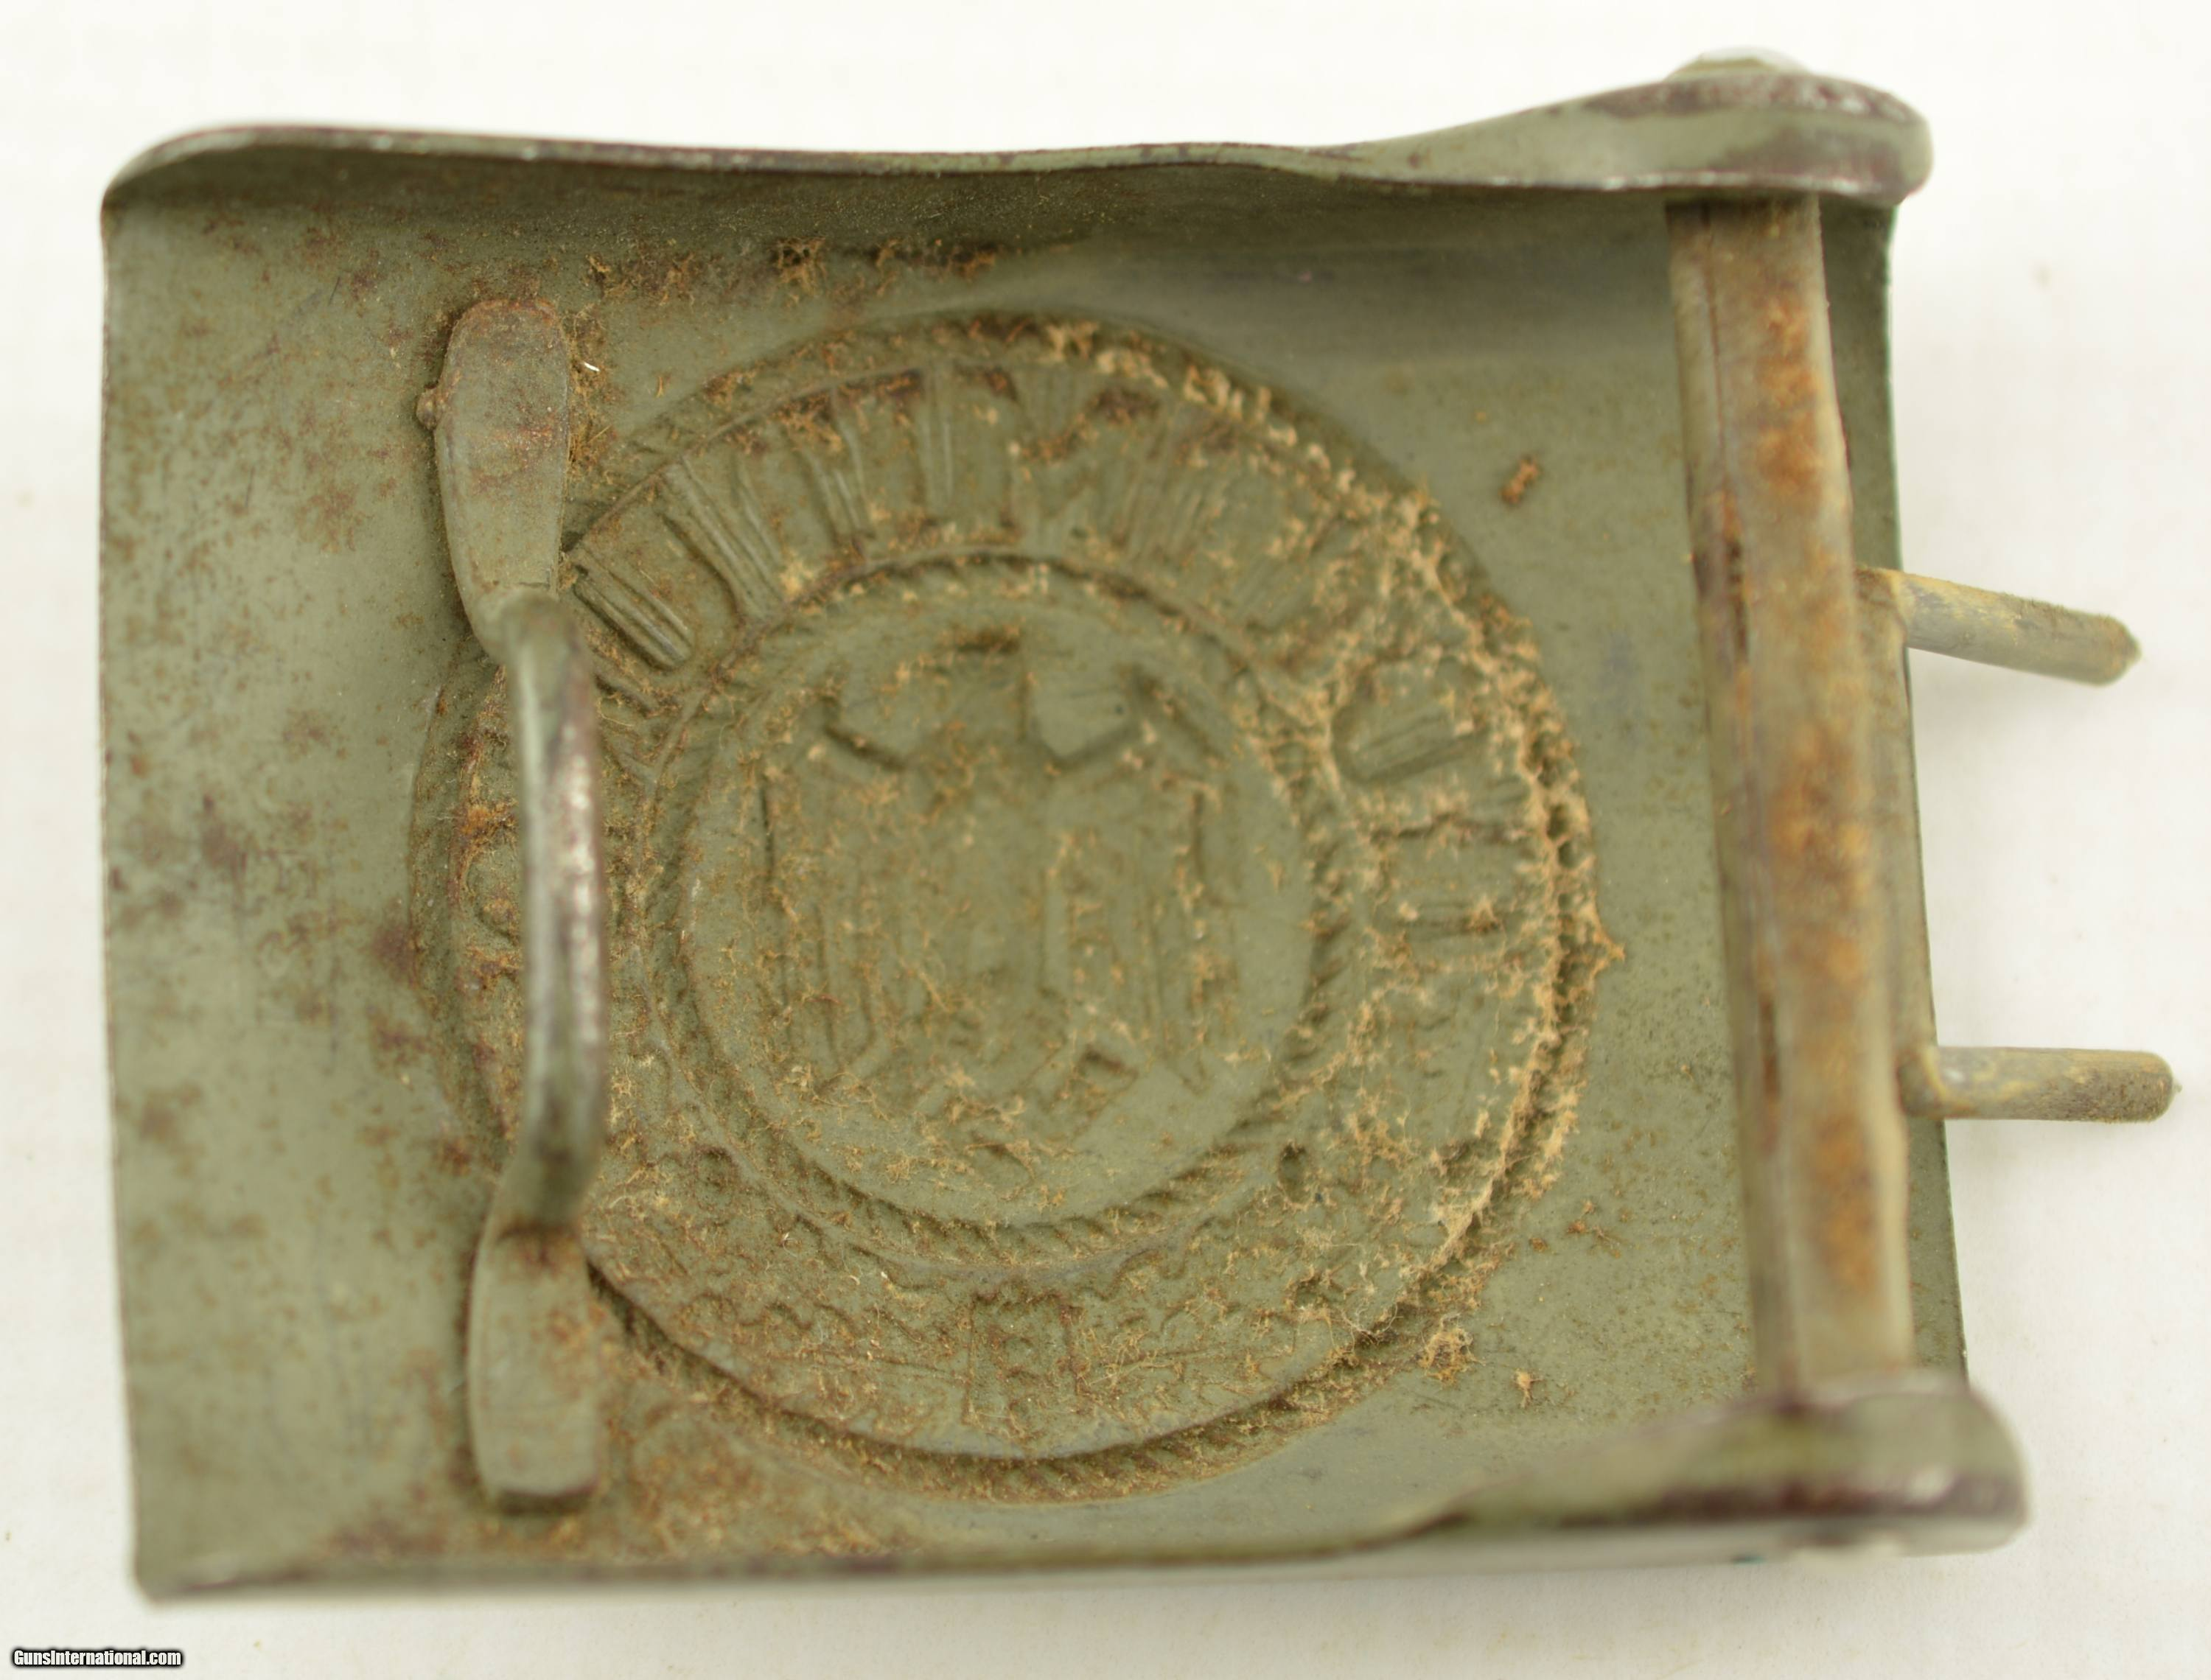 WW2 German Army Belt and Buckle for sale